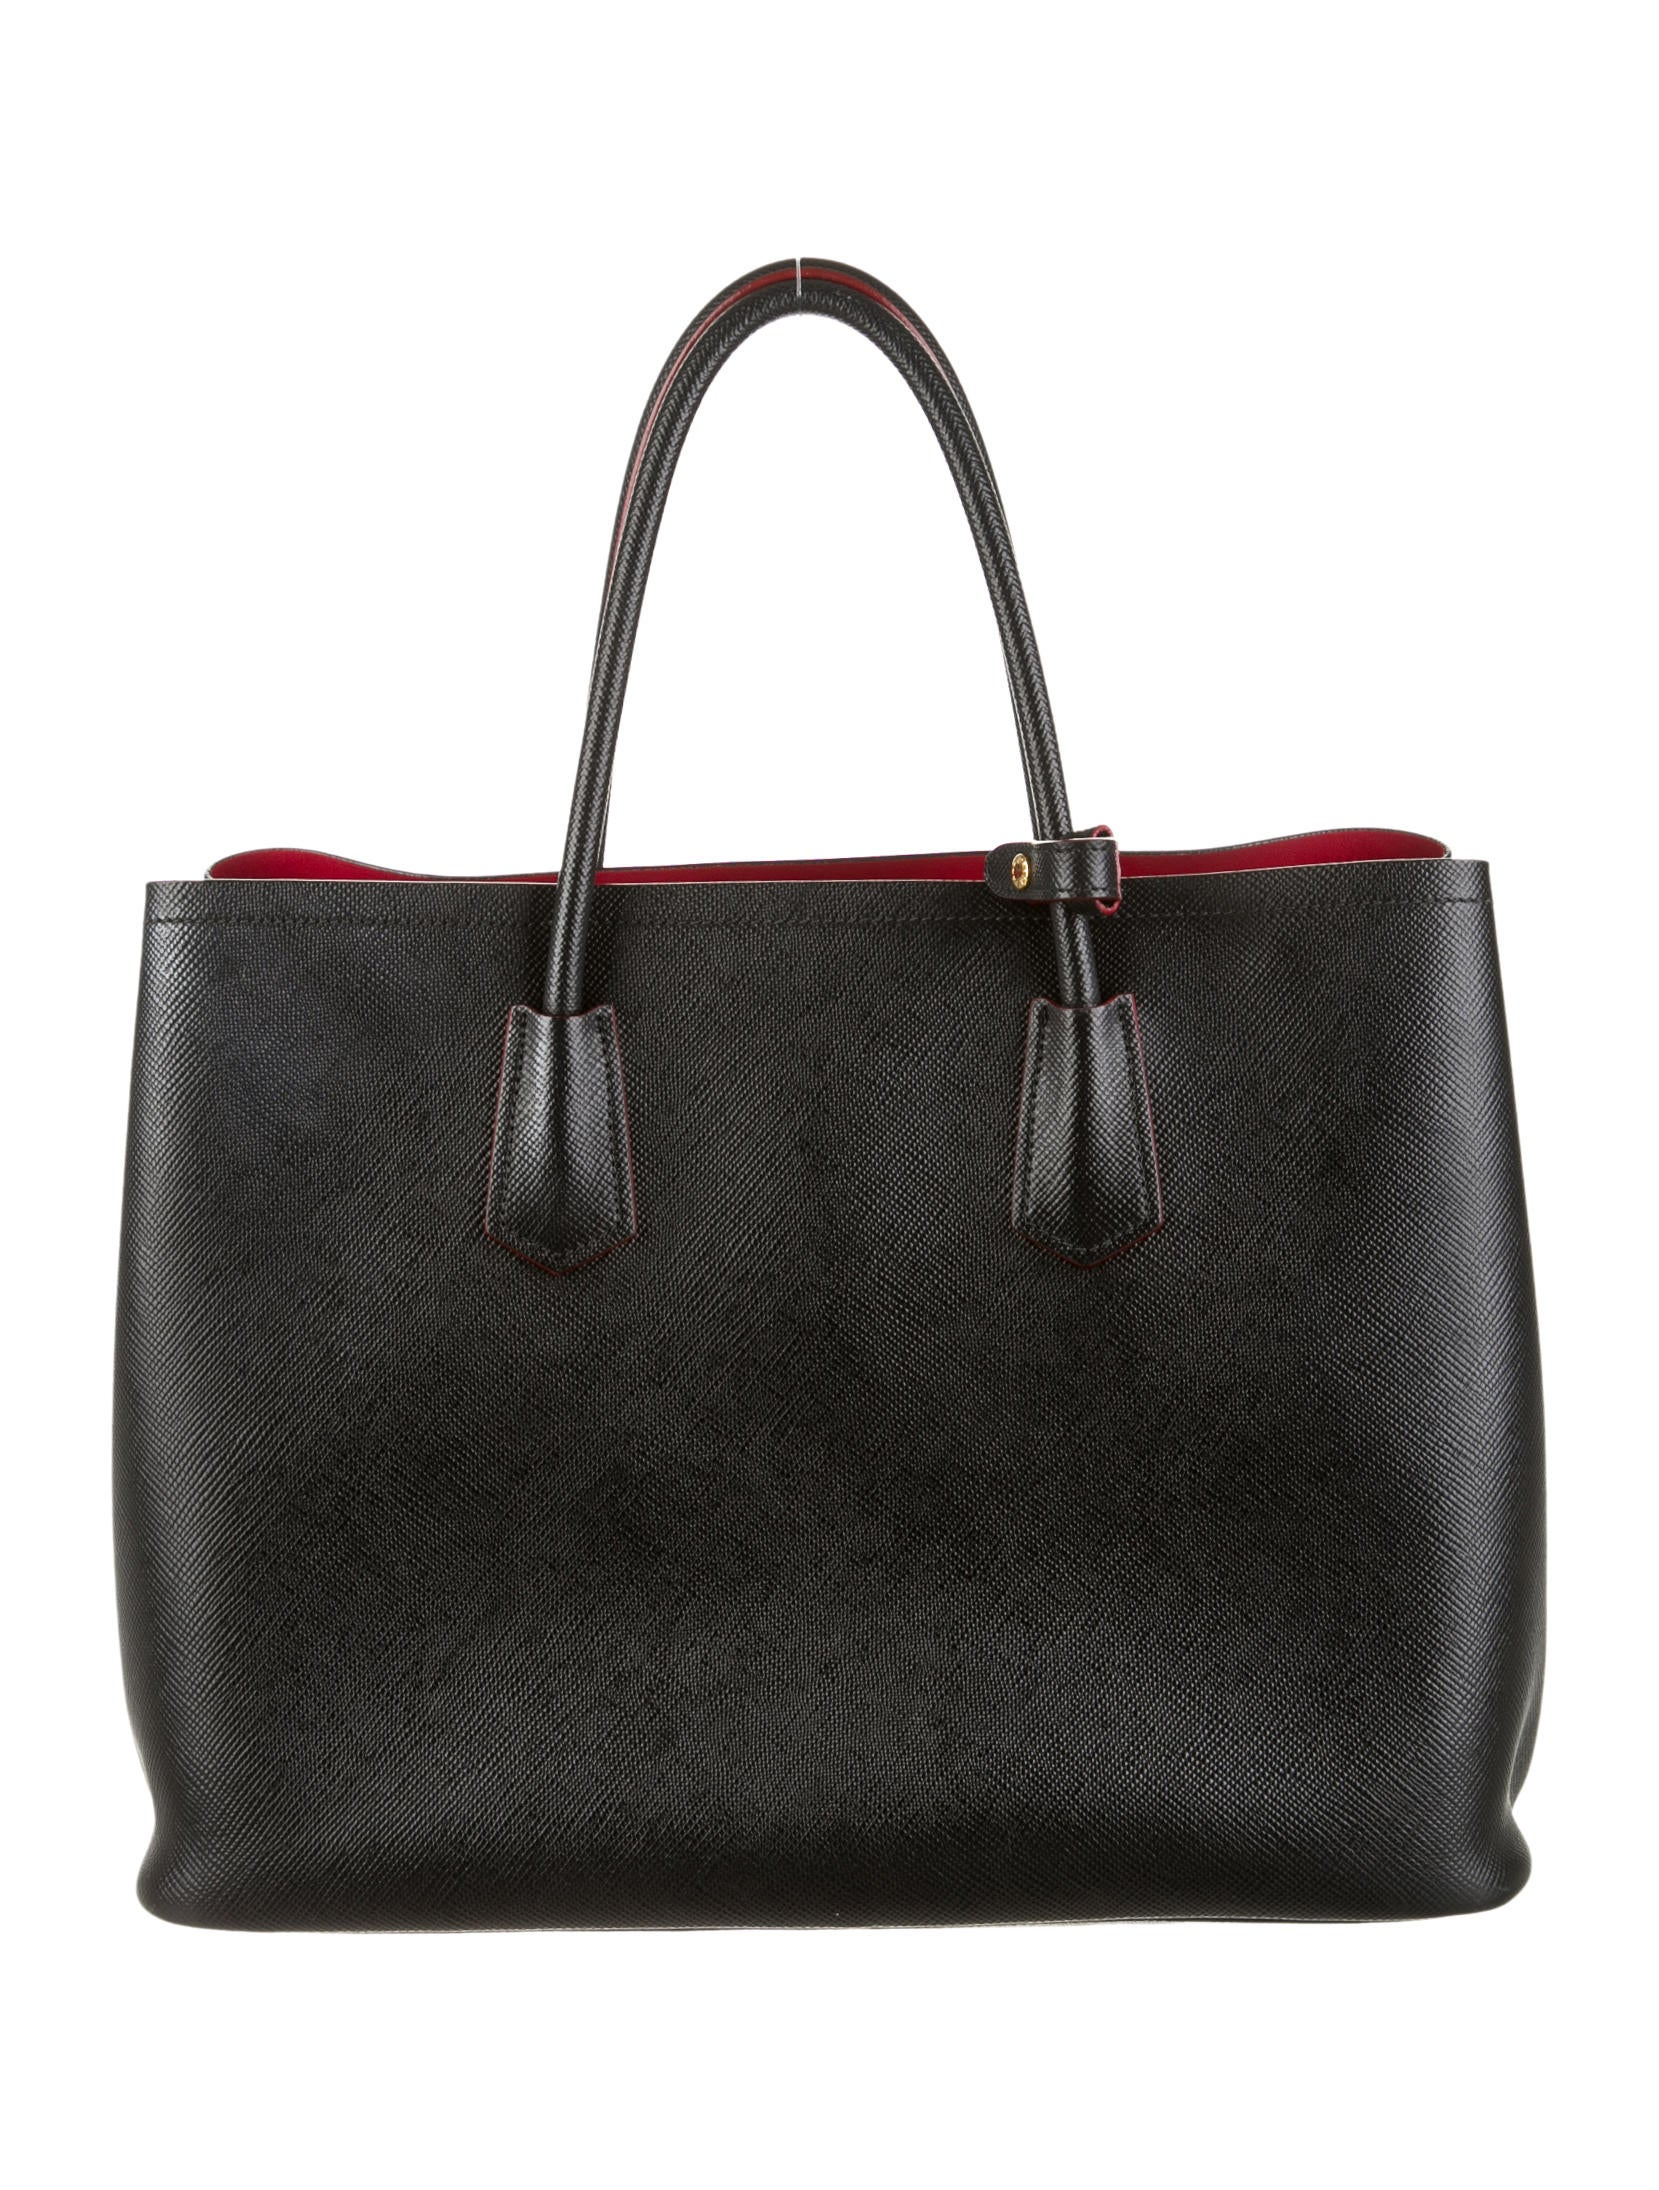 30120bc0acf7ef Prada Double Bag Consignment | Stanford Center for Opportunity ...